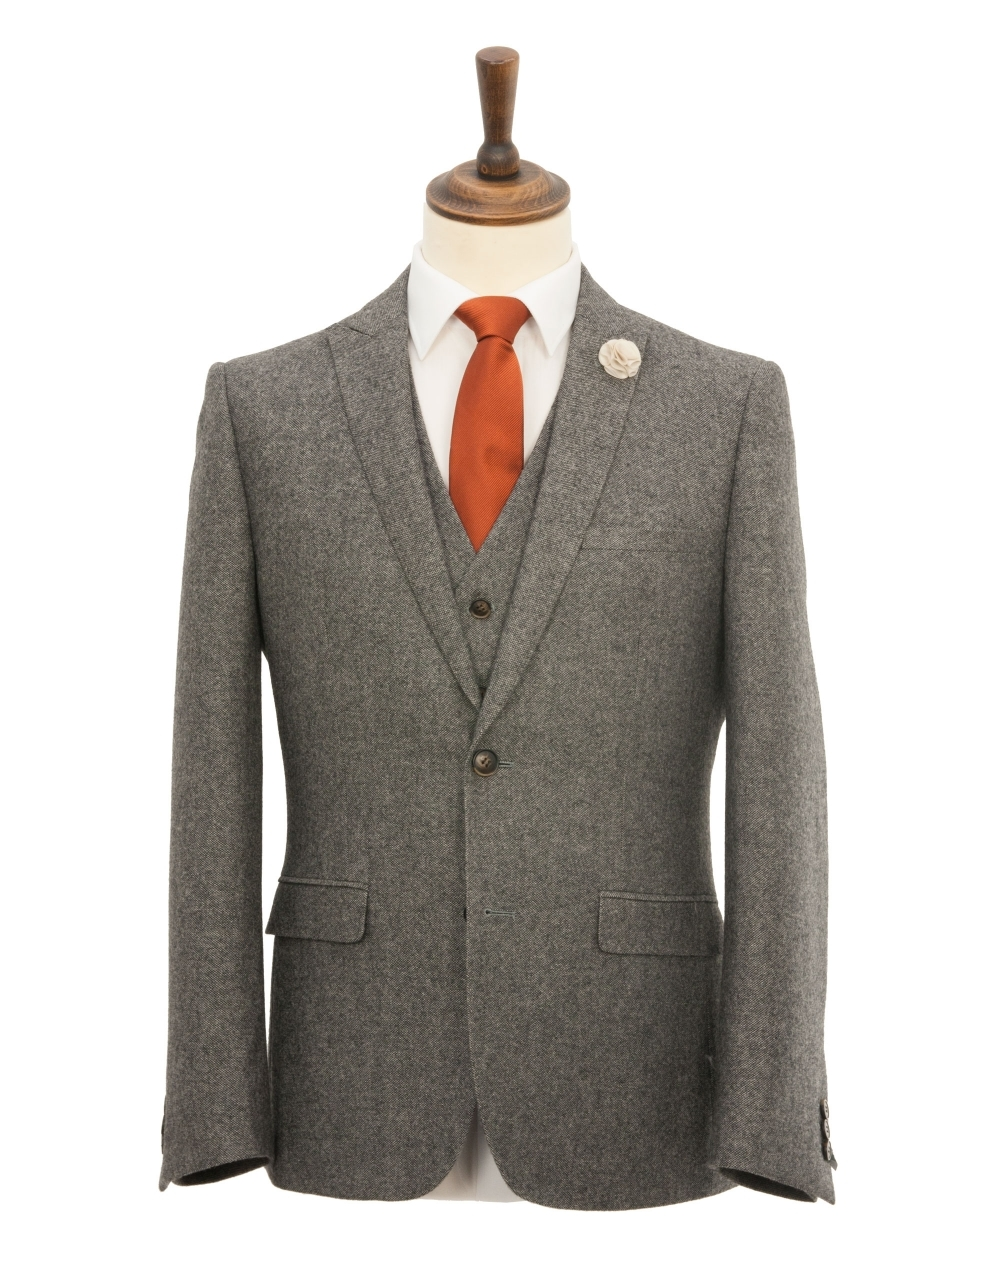 Shop for slim fit and fittted mens suits for skinny men. Get the latest styles, brands of fitted men's clothing from Men's Wearhouse.